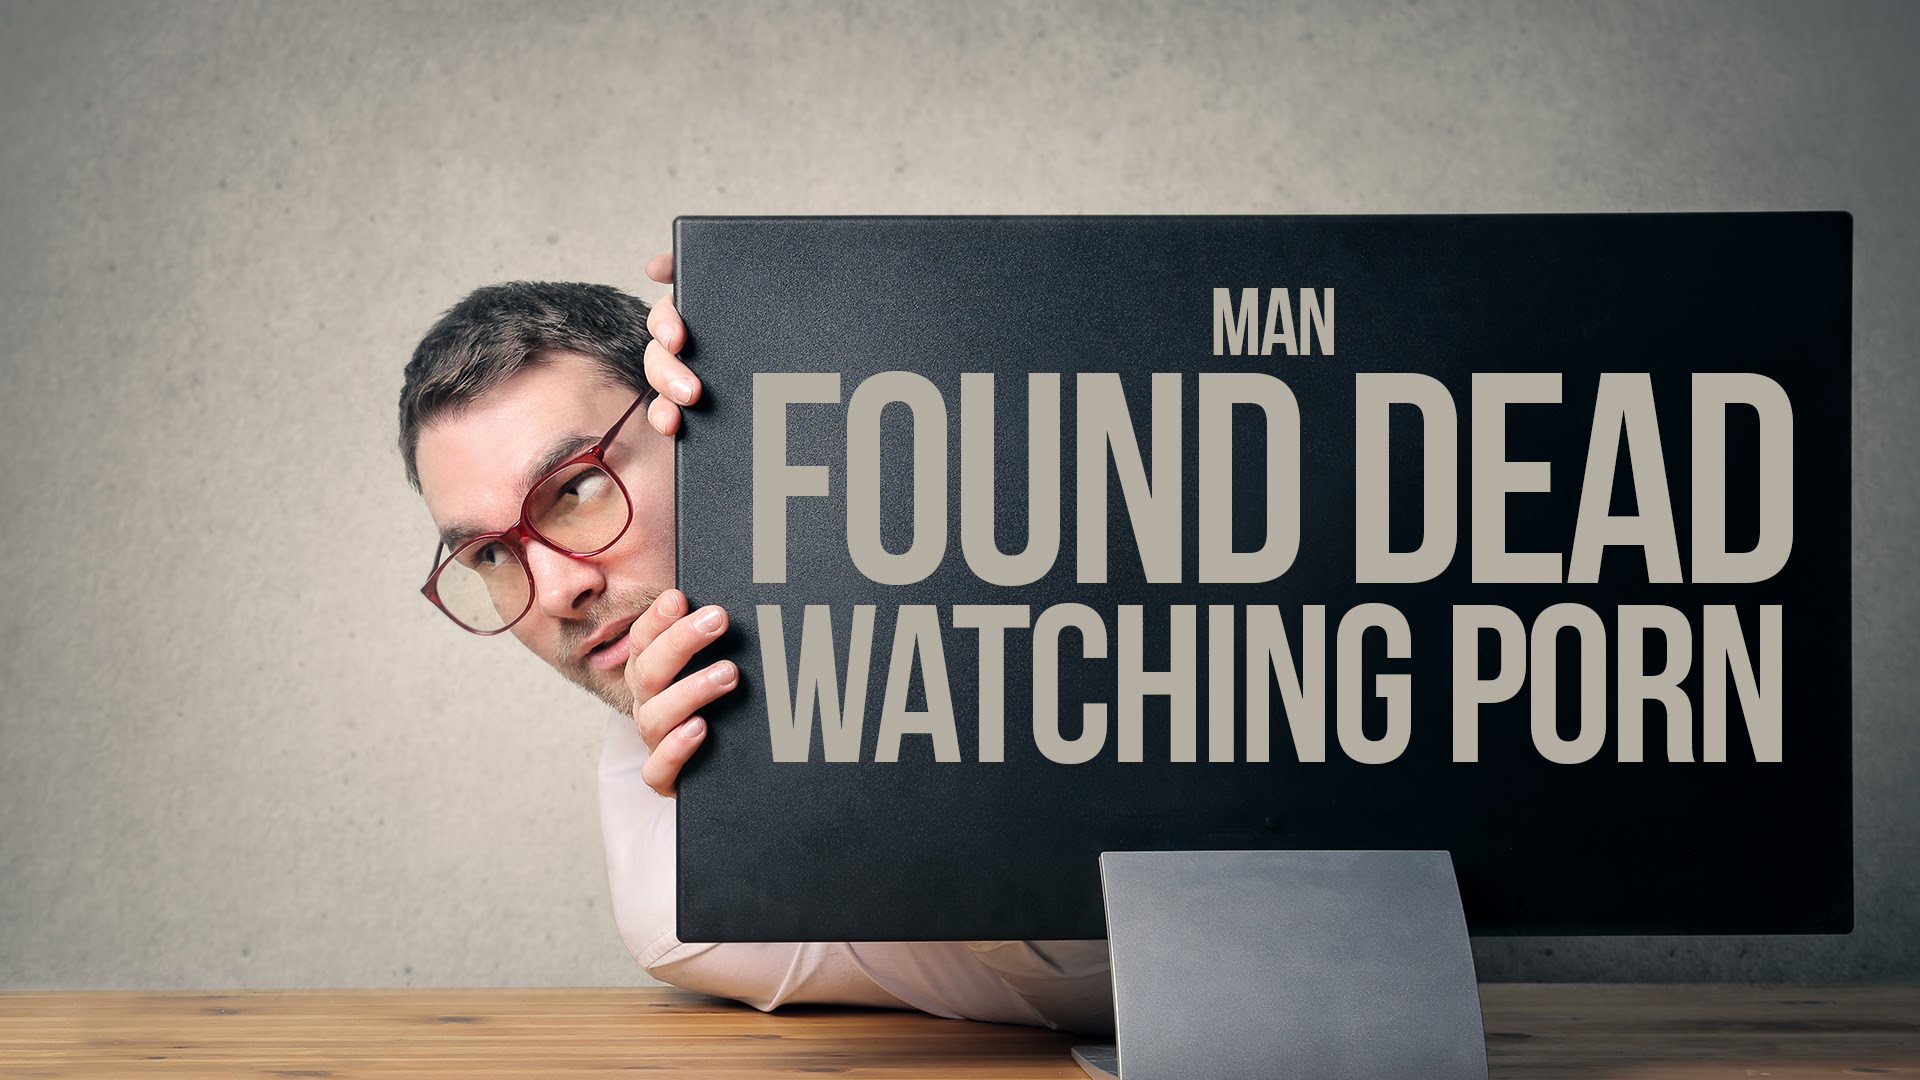 Found Dead Watching Porn (Porn Addiction)